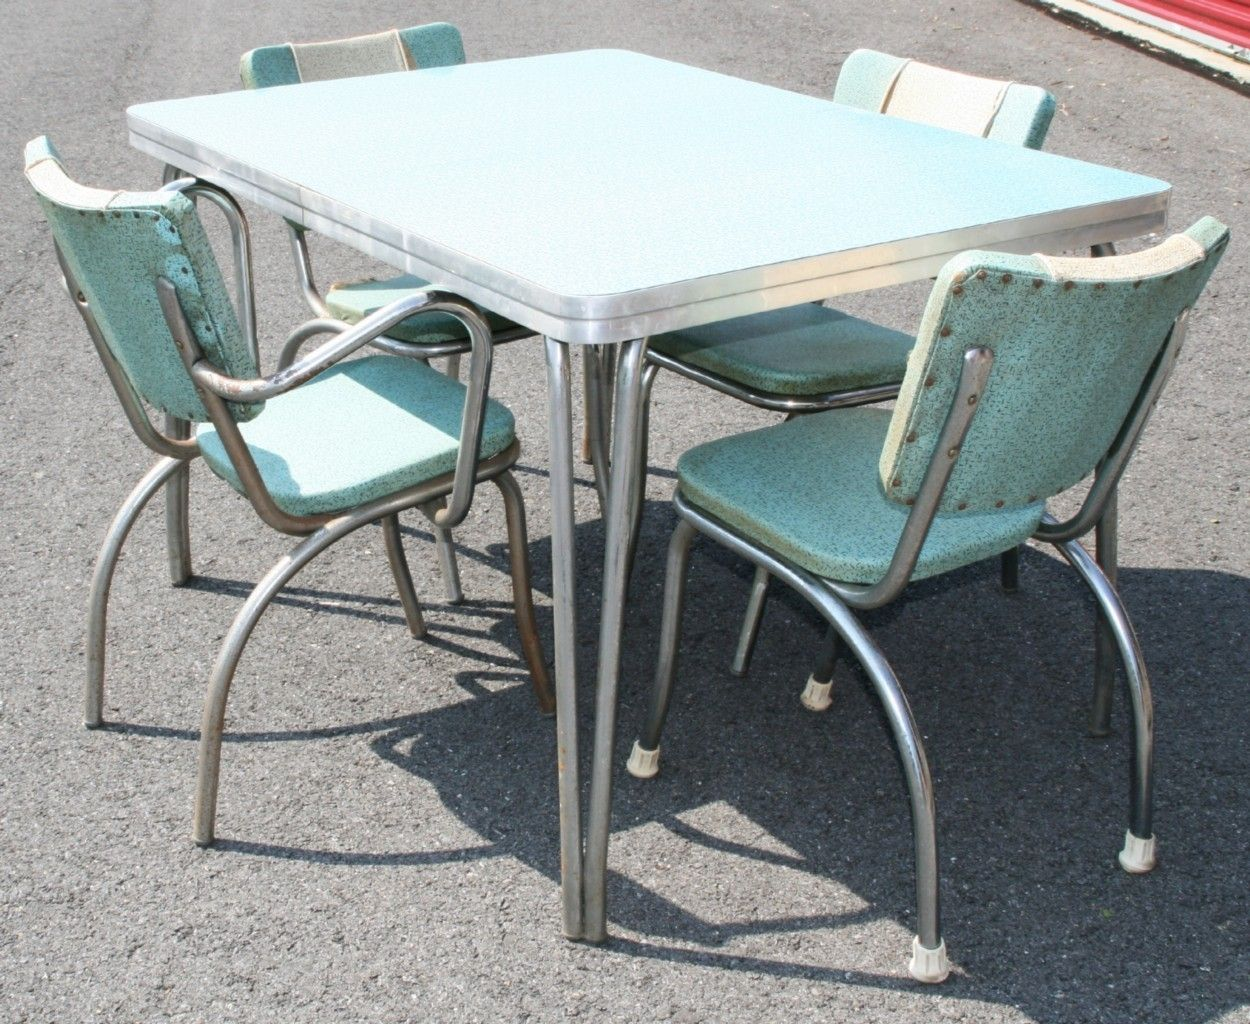 vtg 50s formica table  4 chairs  vintage kitchen retro